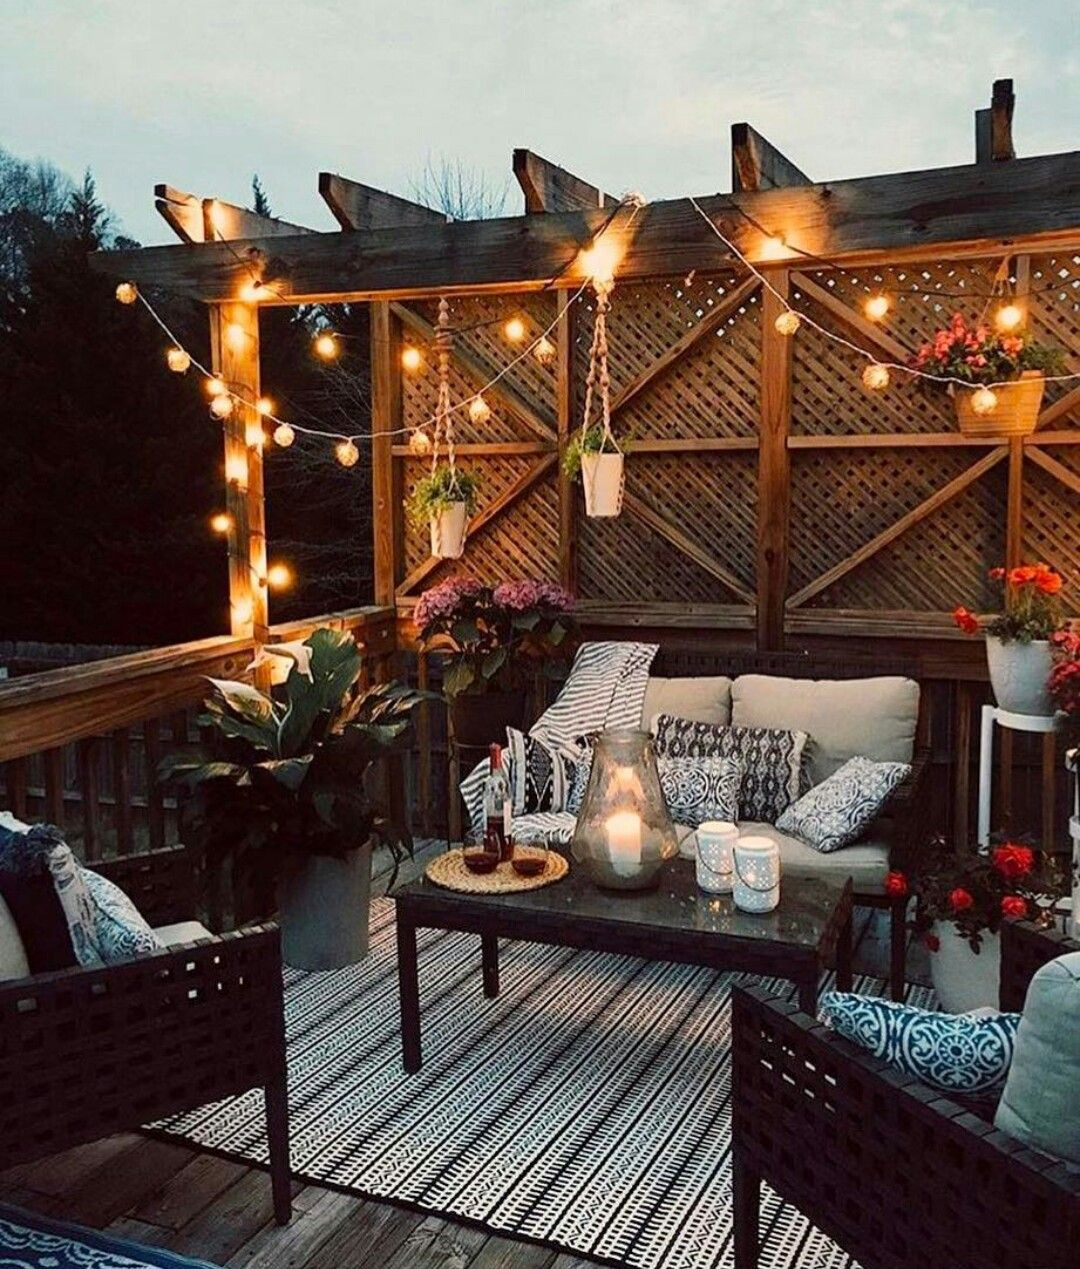 outdoor deck furniture ideas pallet home. I Would Love To Wind Down After Work On This Cozy Outdoor Patio : CozyPlaces Deck Furniture Ideas Pallet Home O